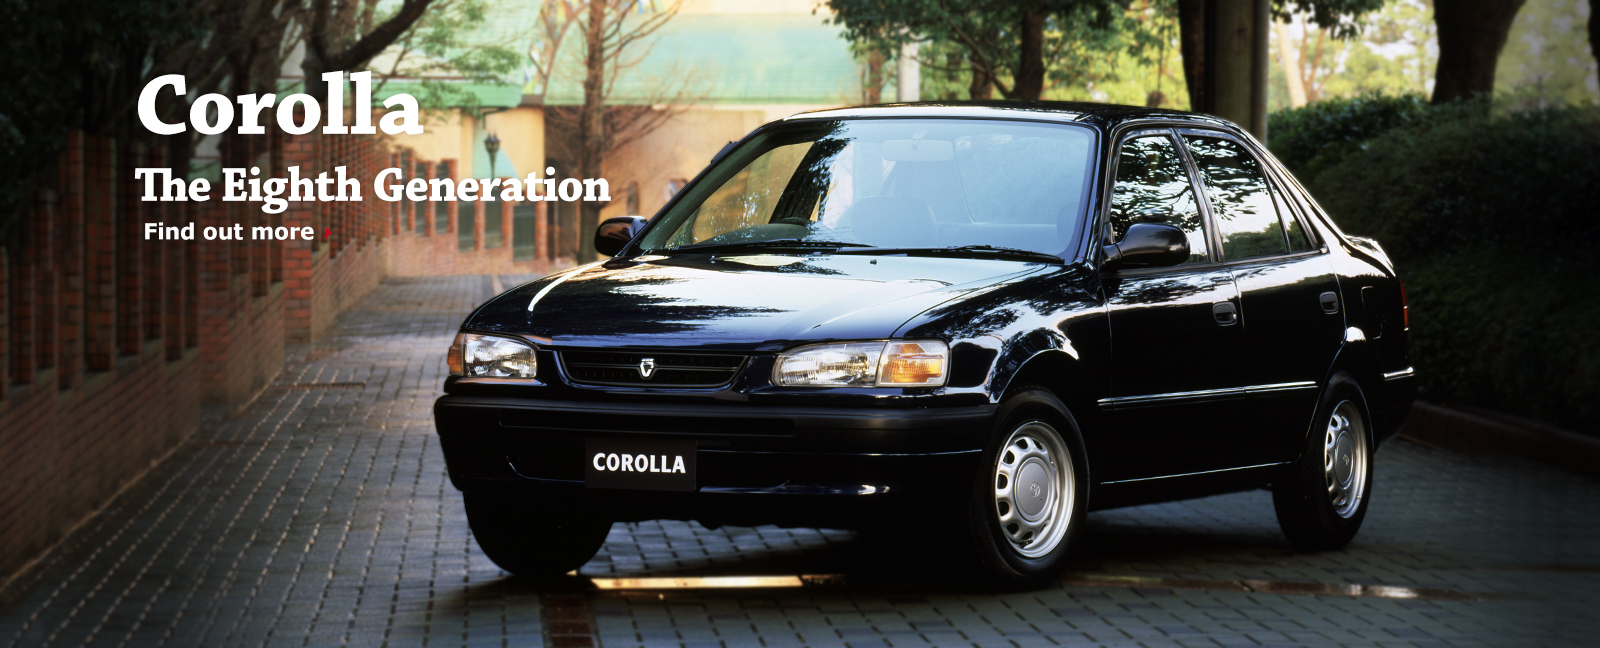 Corolla The Eighth Generation Find out more